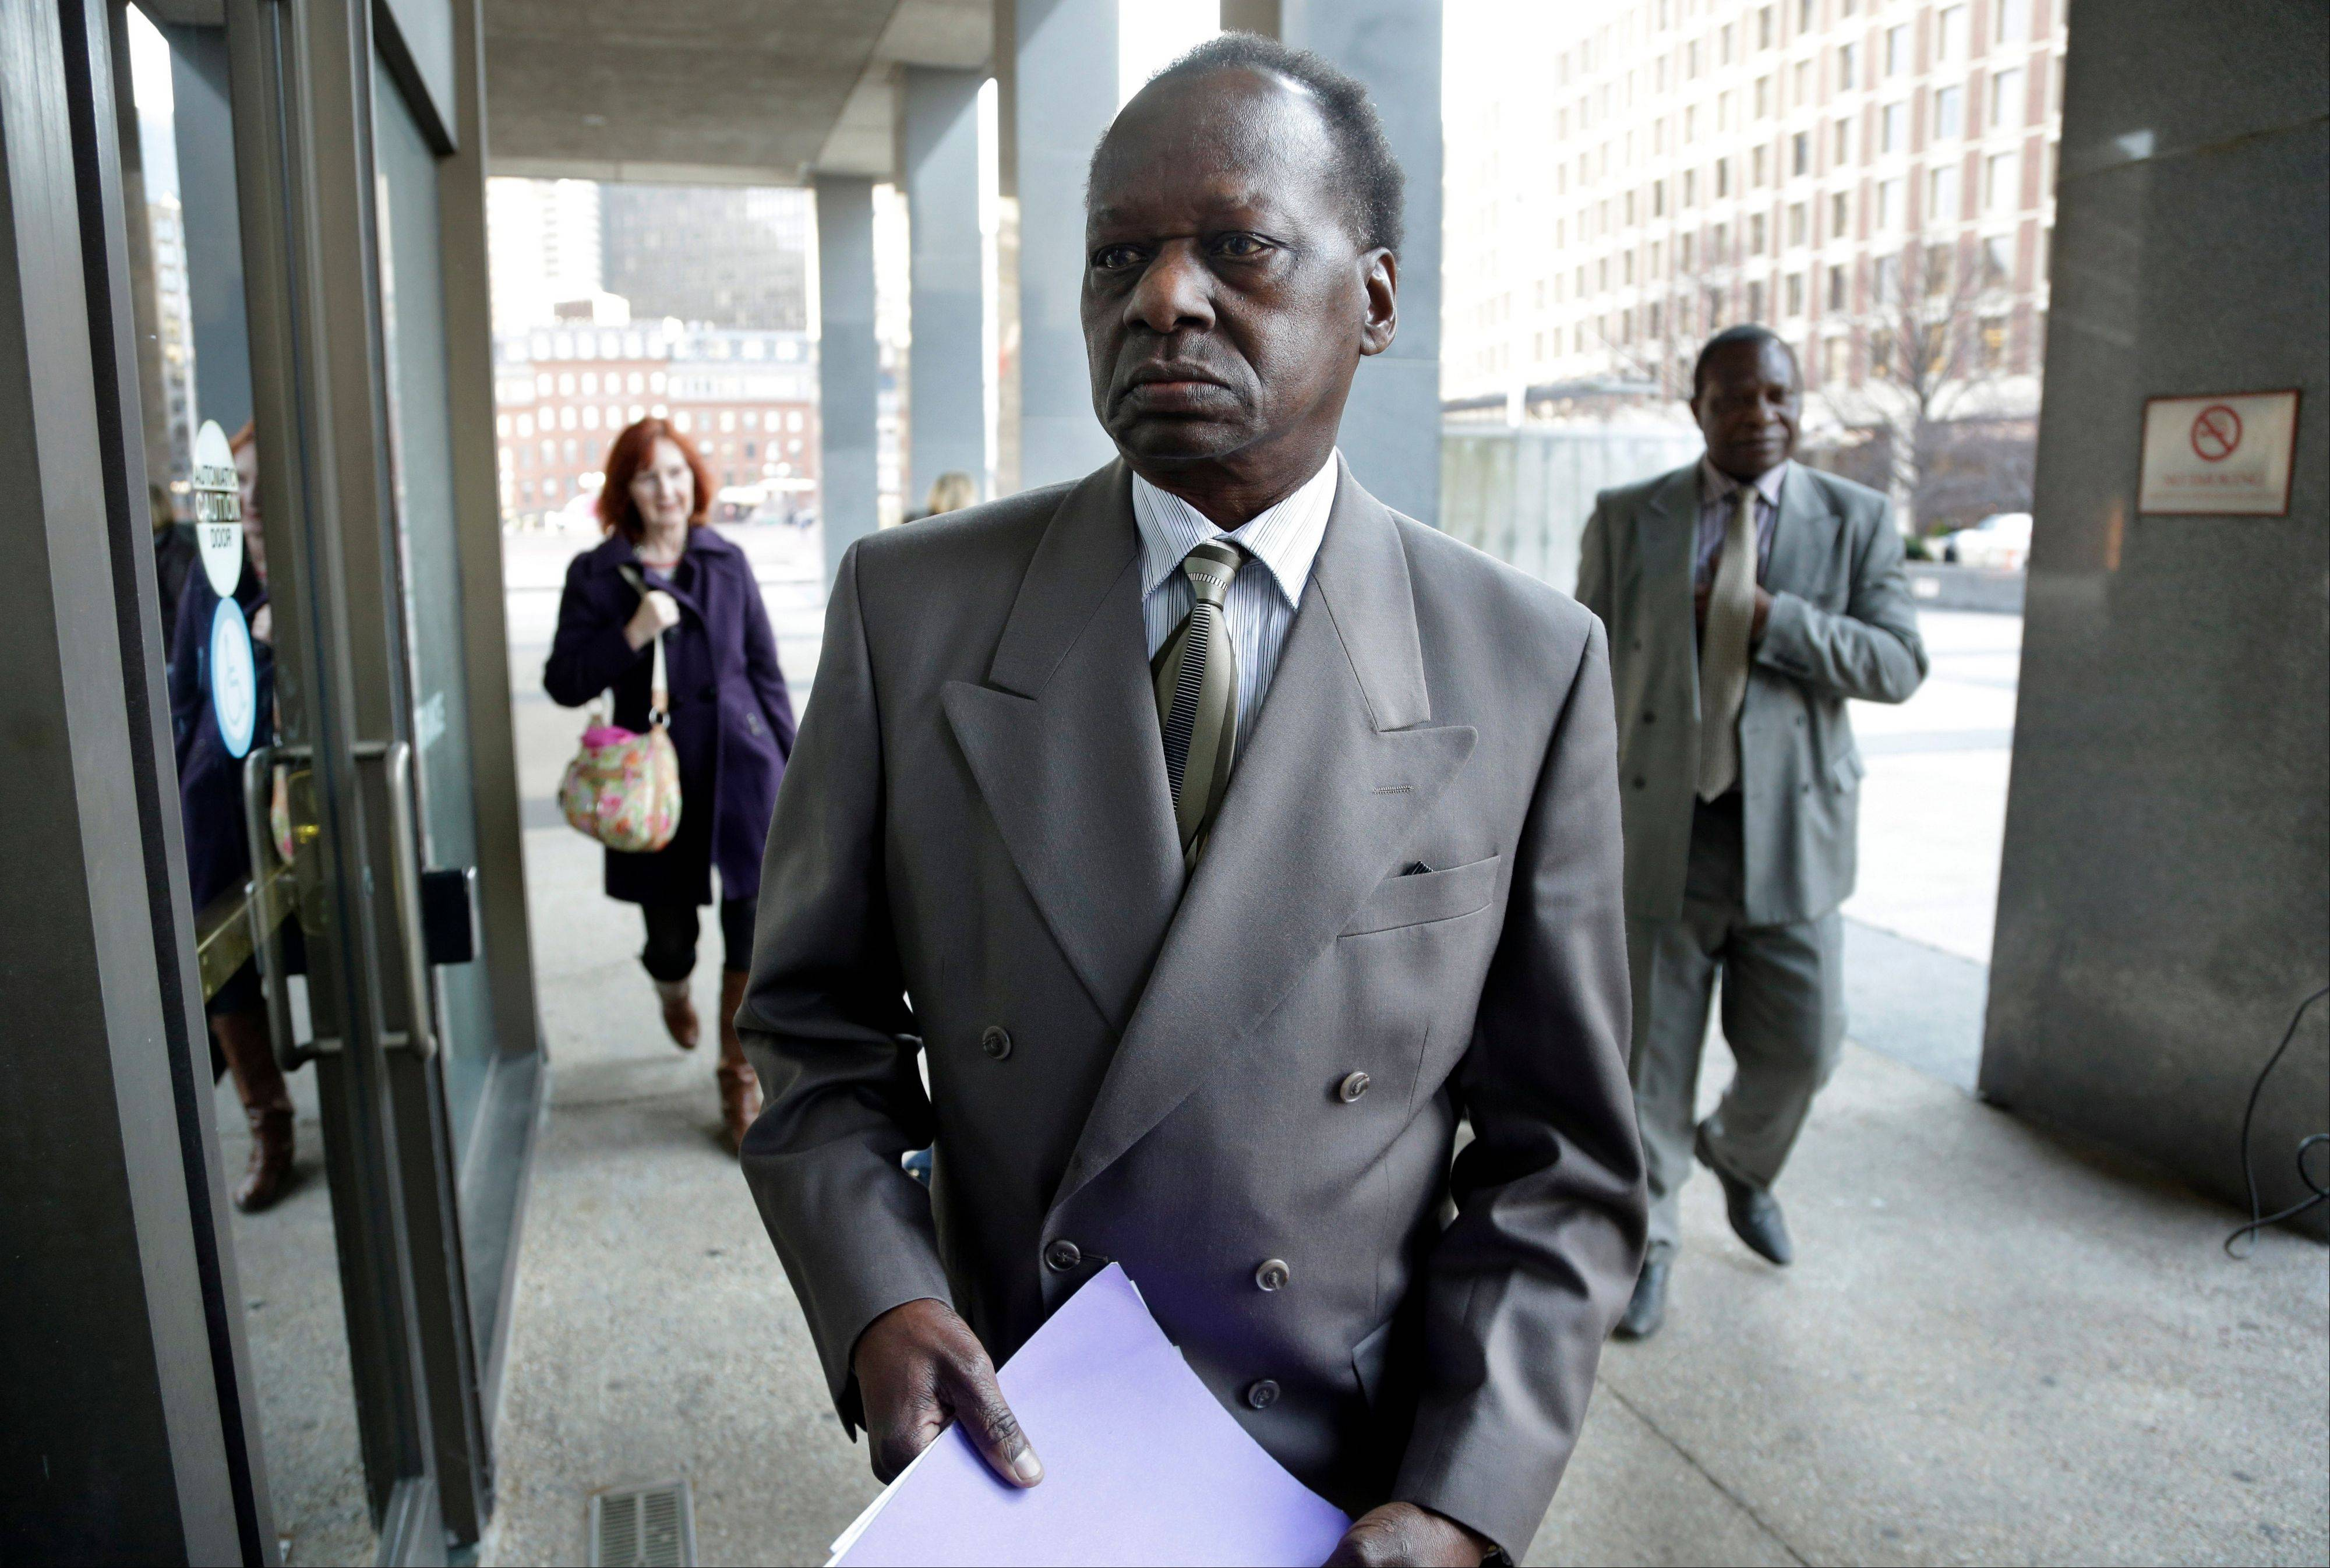 Onyango Obama, President Barack Obama�s Kenyan-born uncle, arrives at U.S. Immigration Court for a deportation hearing Tuesday.